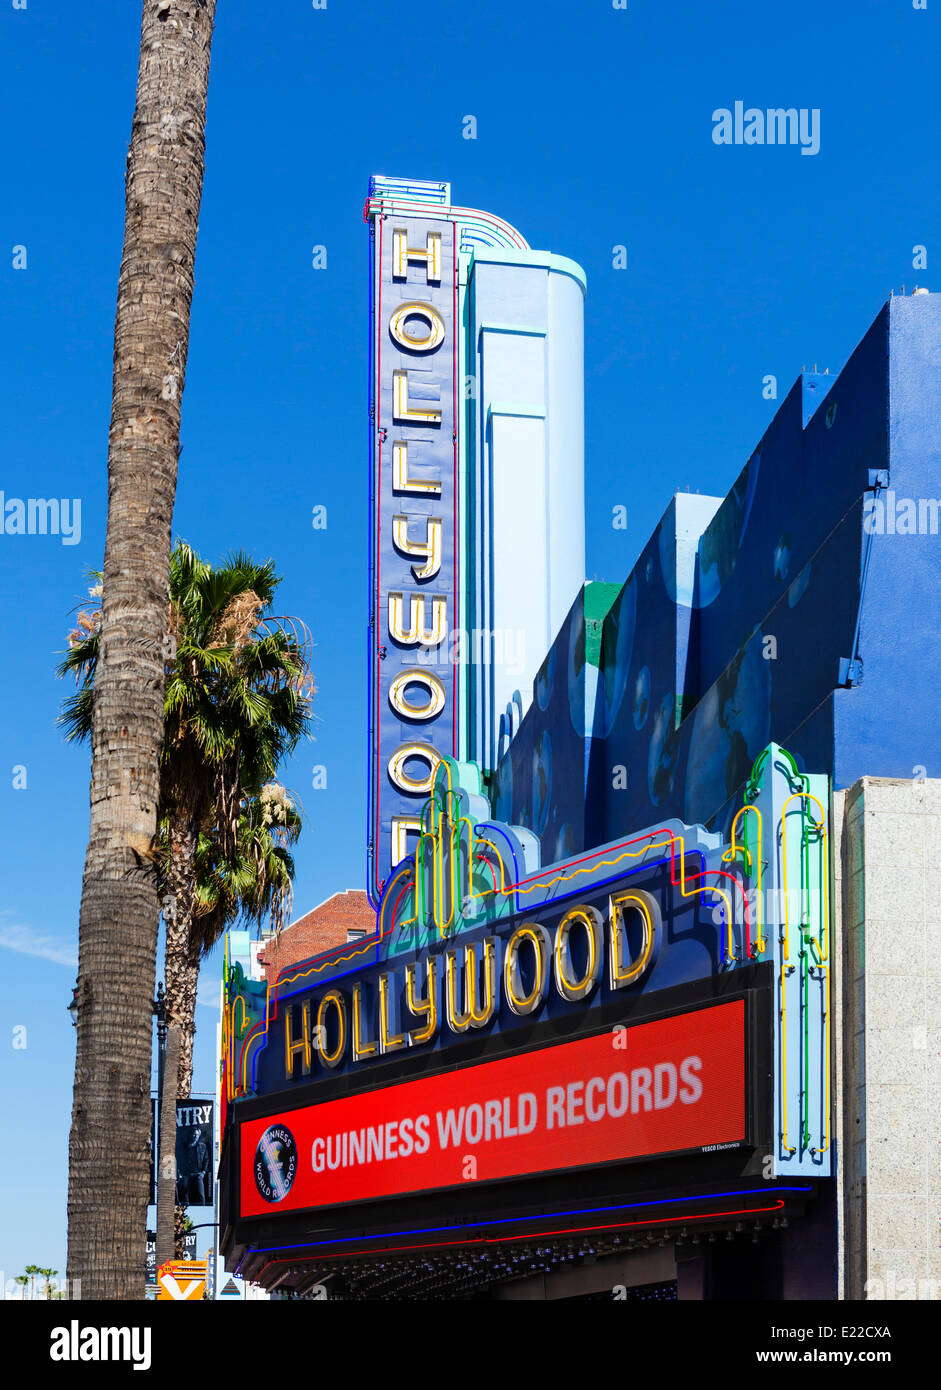 Ripley's Guinnes World Records Museum, Hollywood Boulevard, Hollywood, Los Angeles, California, USA - Stock Image